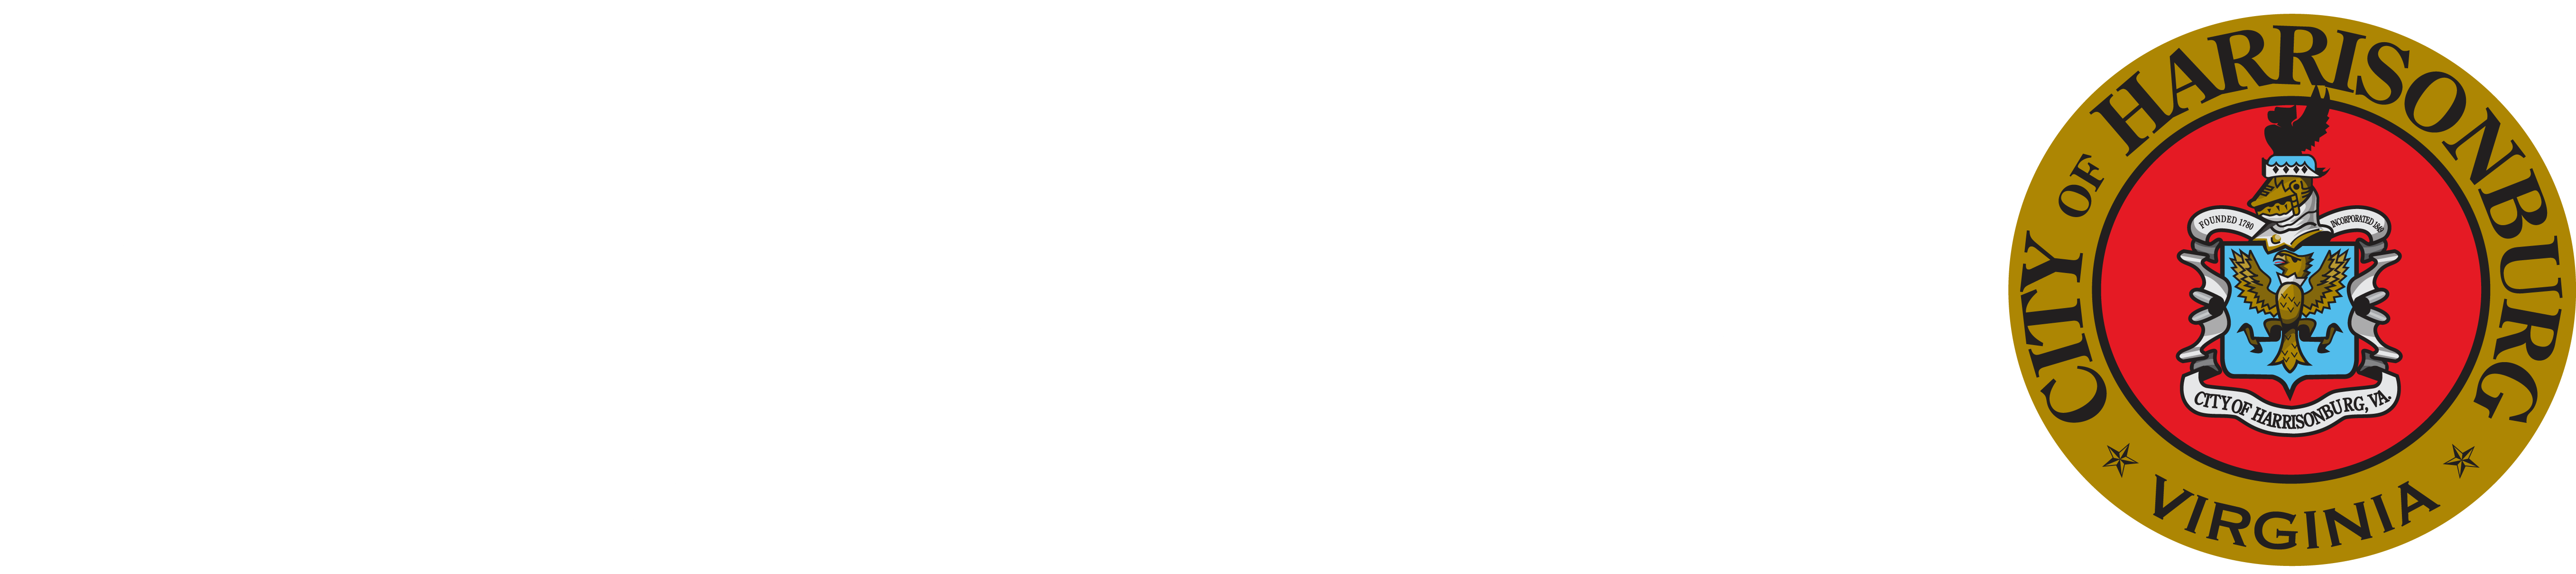 Harrisonburg Economic Development